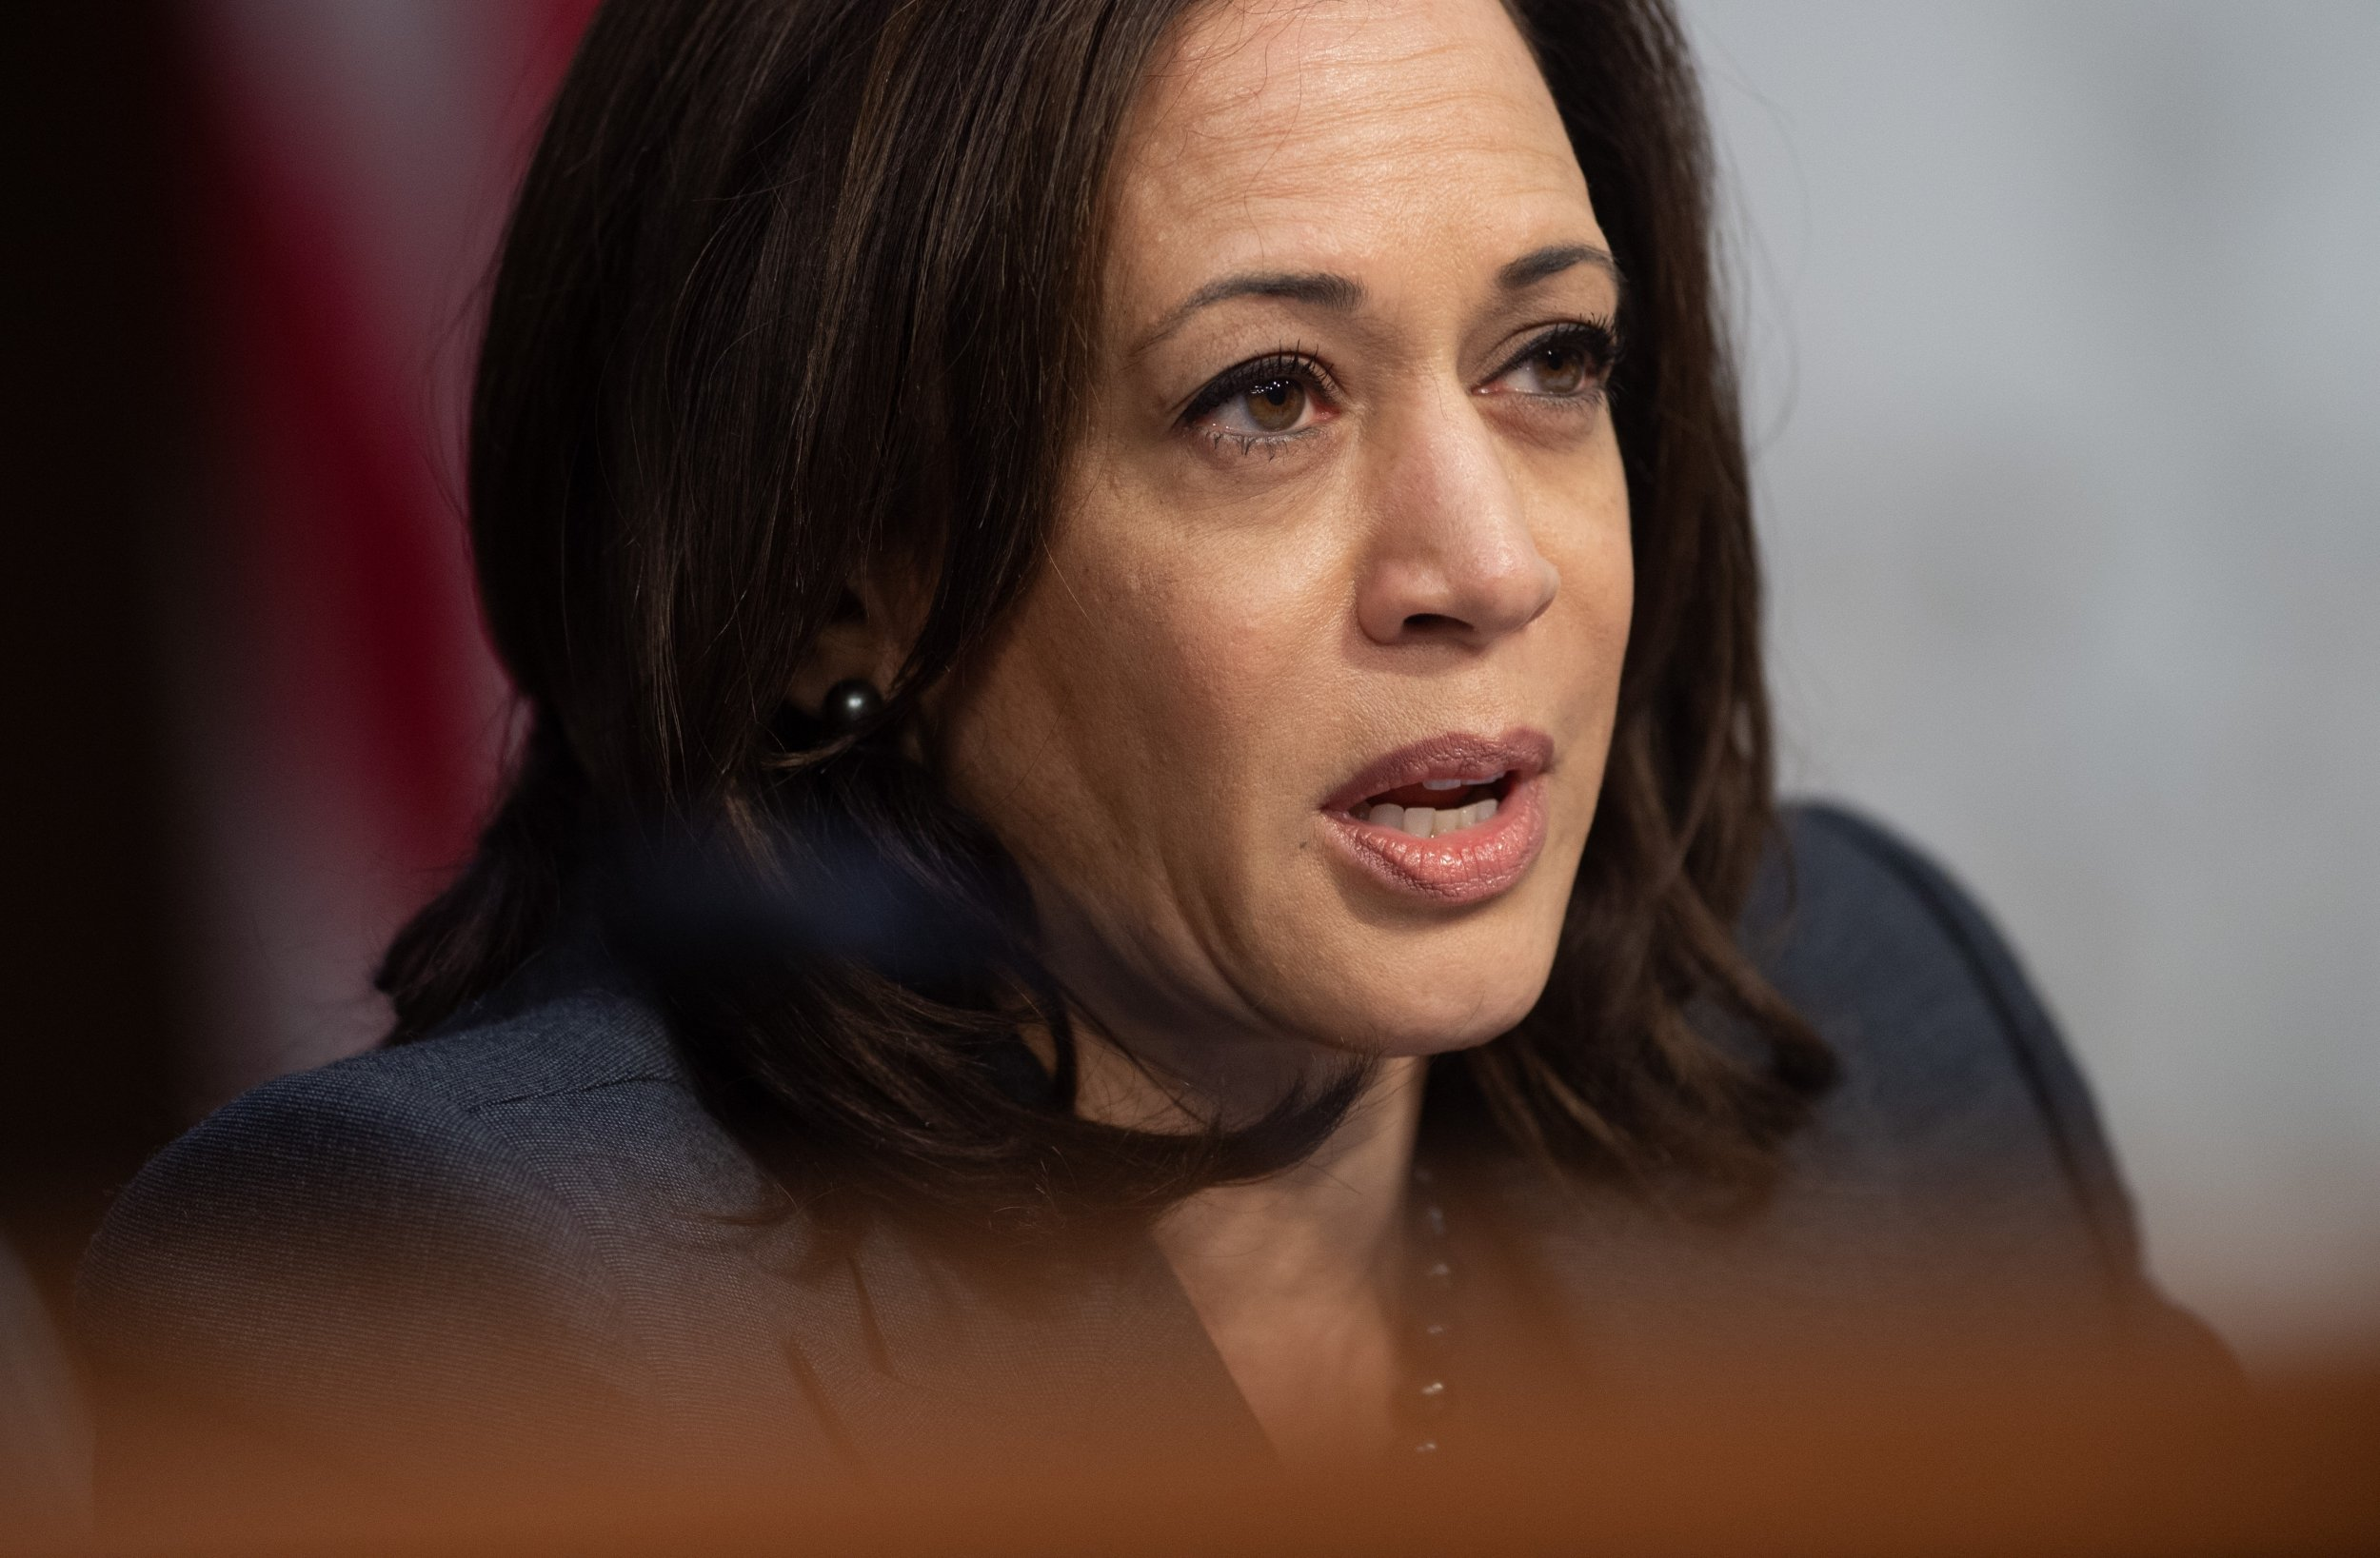 Fox Nation Host Accuses Kamala Harris Of Using Affair With Ex San Francisco Mayor To Boost Career Well Isn T That Something